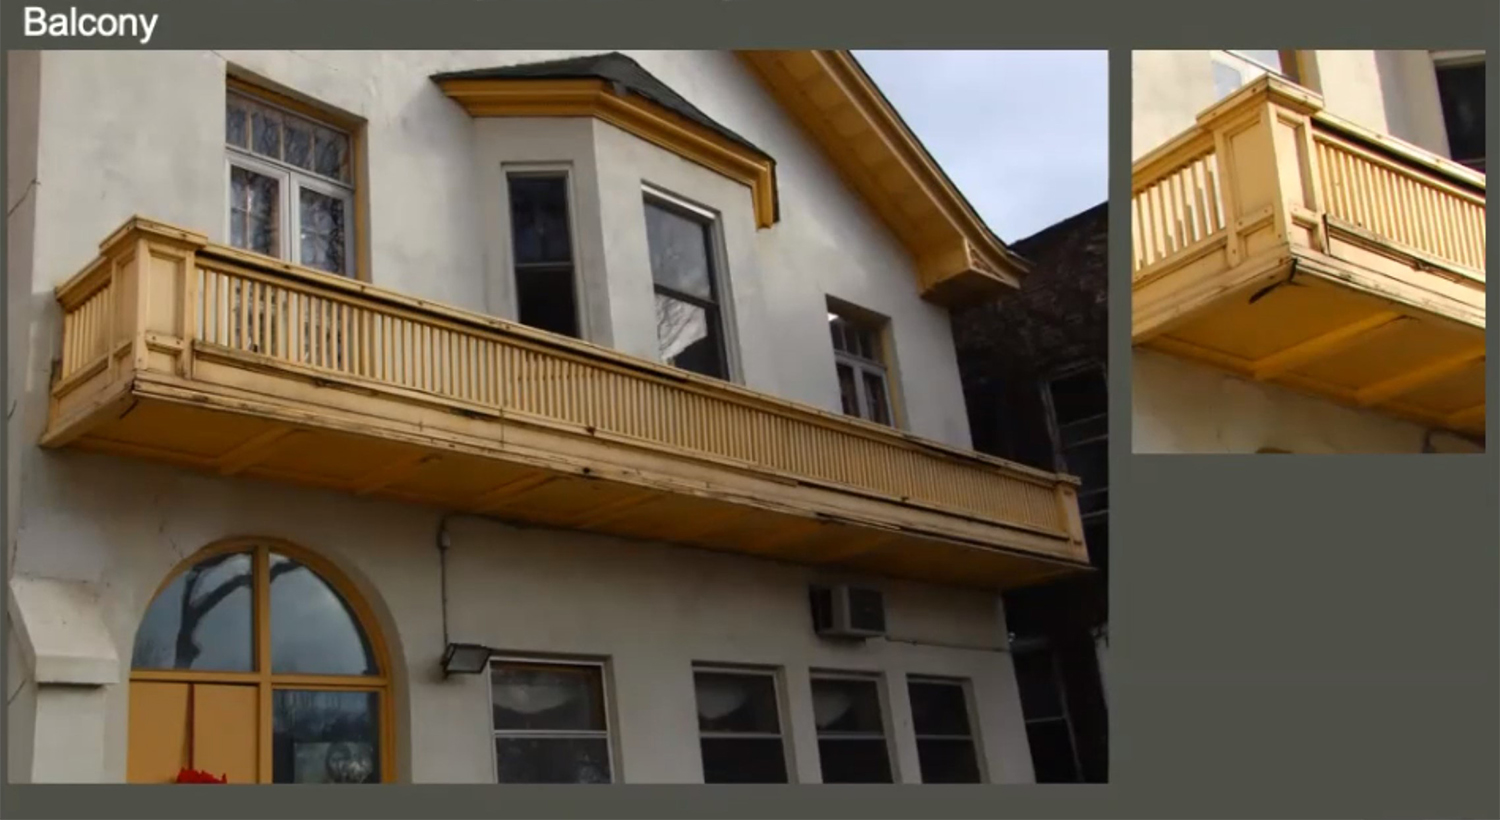 Balcony Condition on Holy Trinity Orthodox Cathedral and Rectory. Images by Landmarks Commission